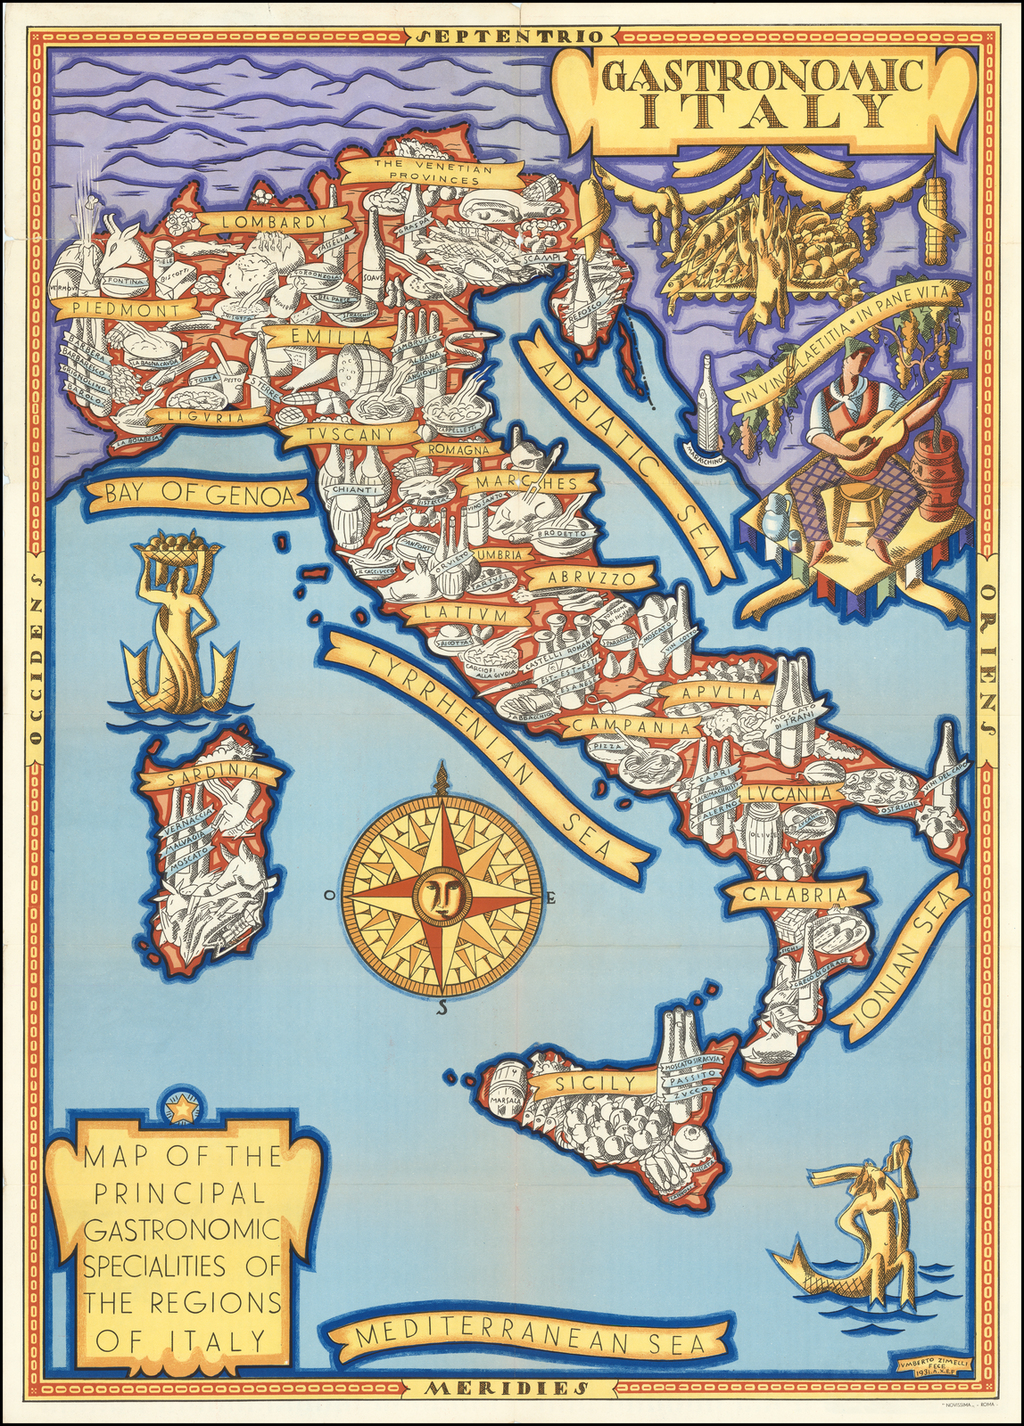 Map of the Principal Gastronomic Specialties of the Regions of Italy By Umberto Zimelli